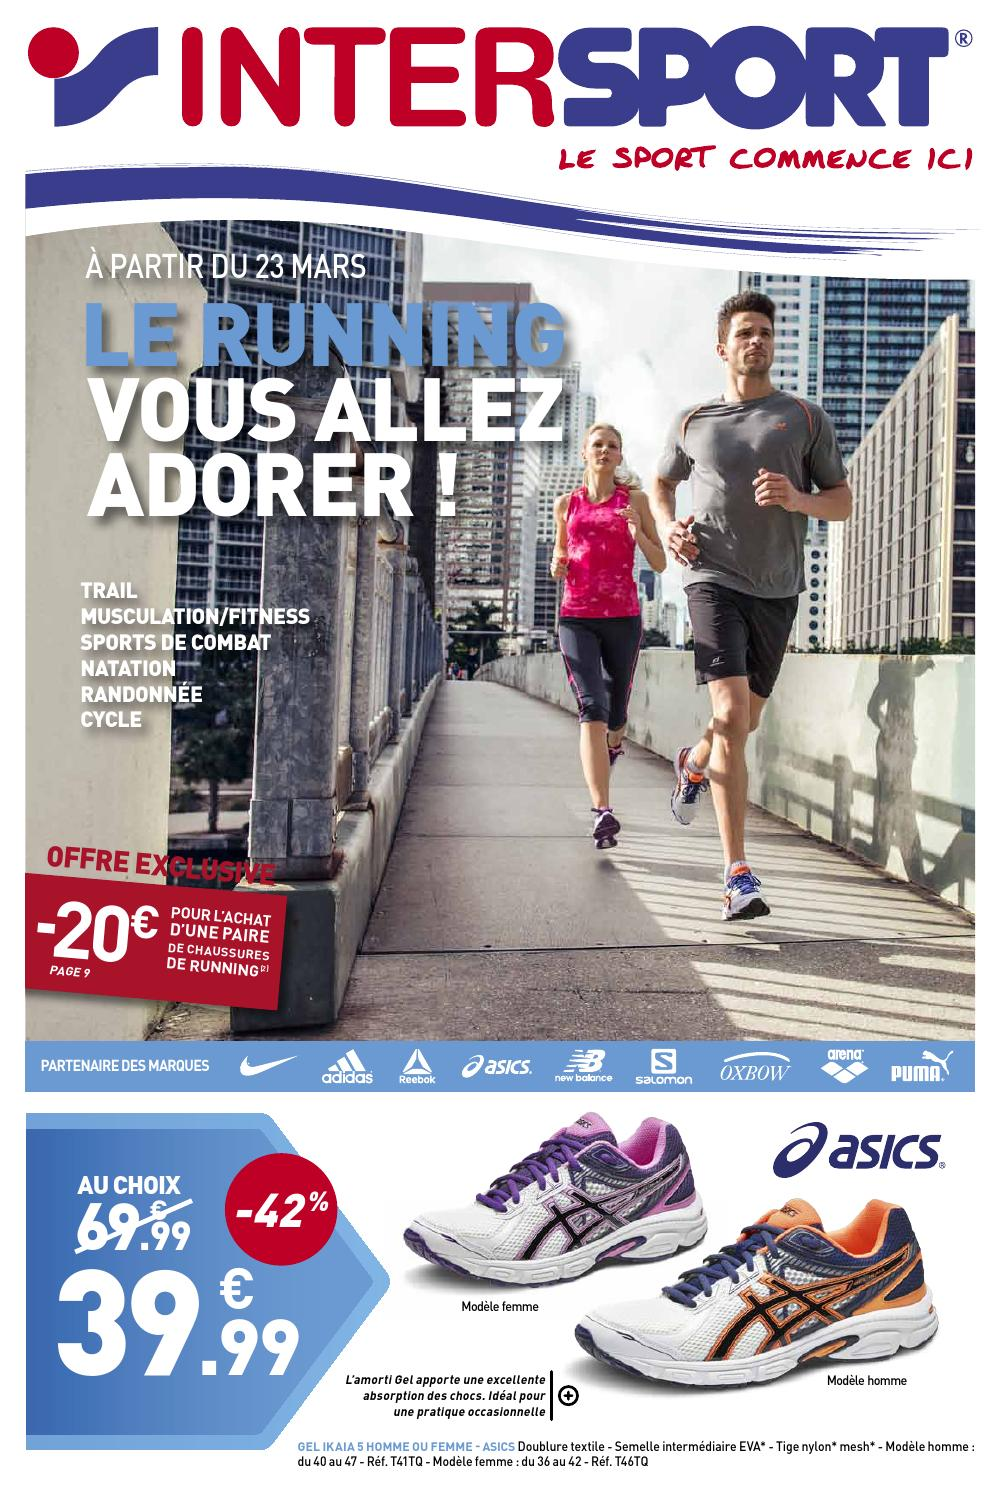 2018 sneakers outlet on sale elegant shoes INTERSPORT - Running (28 pages) by INTERSPORT France - issuu